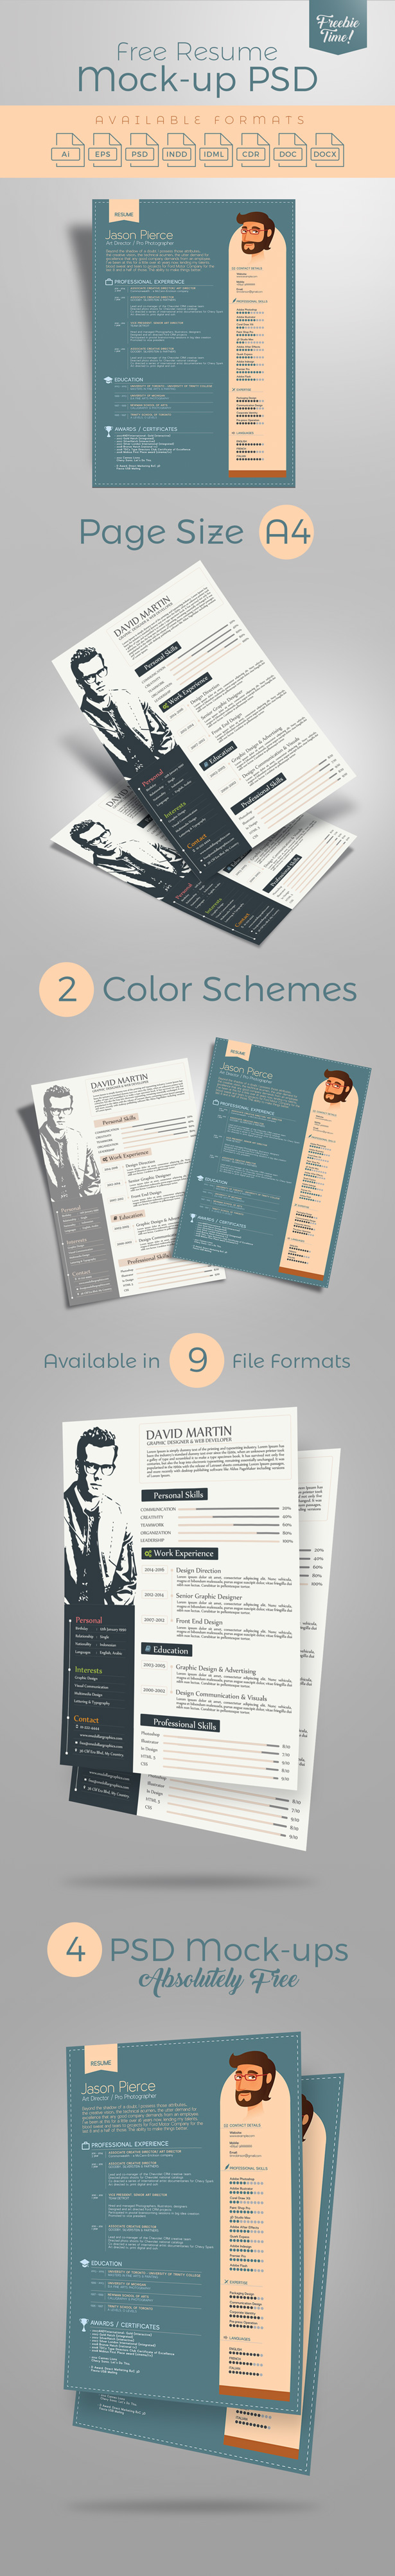 free-a4-resume-mock-ups-psd-display-presentation-2